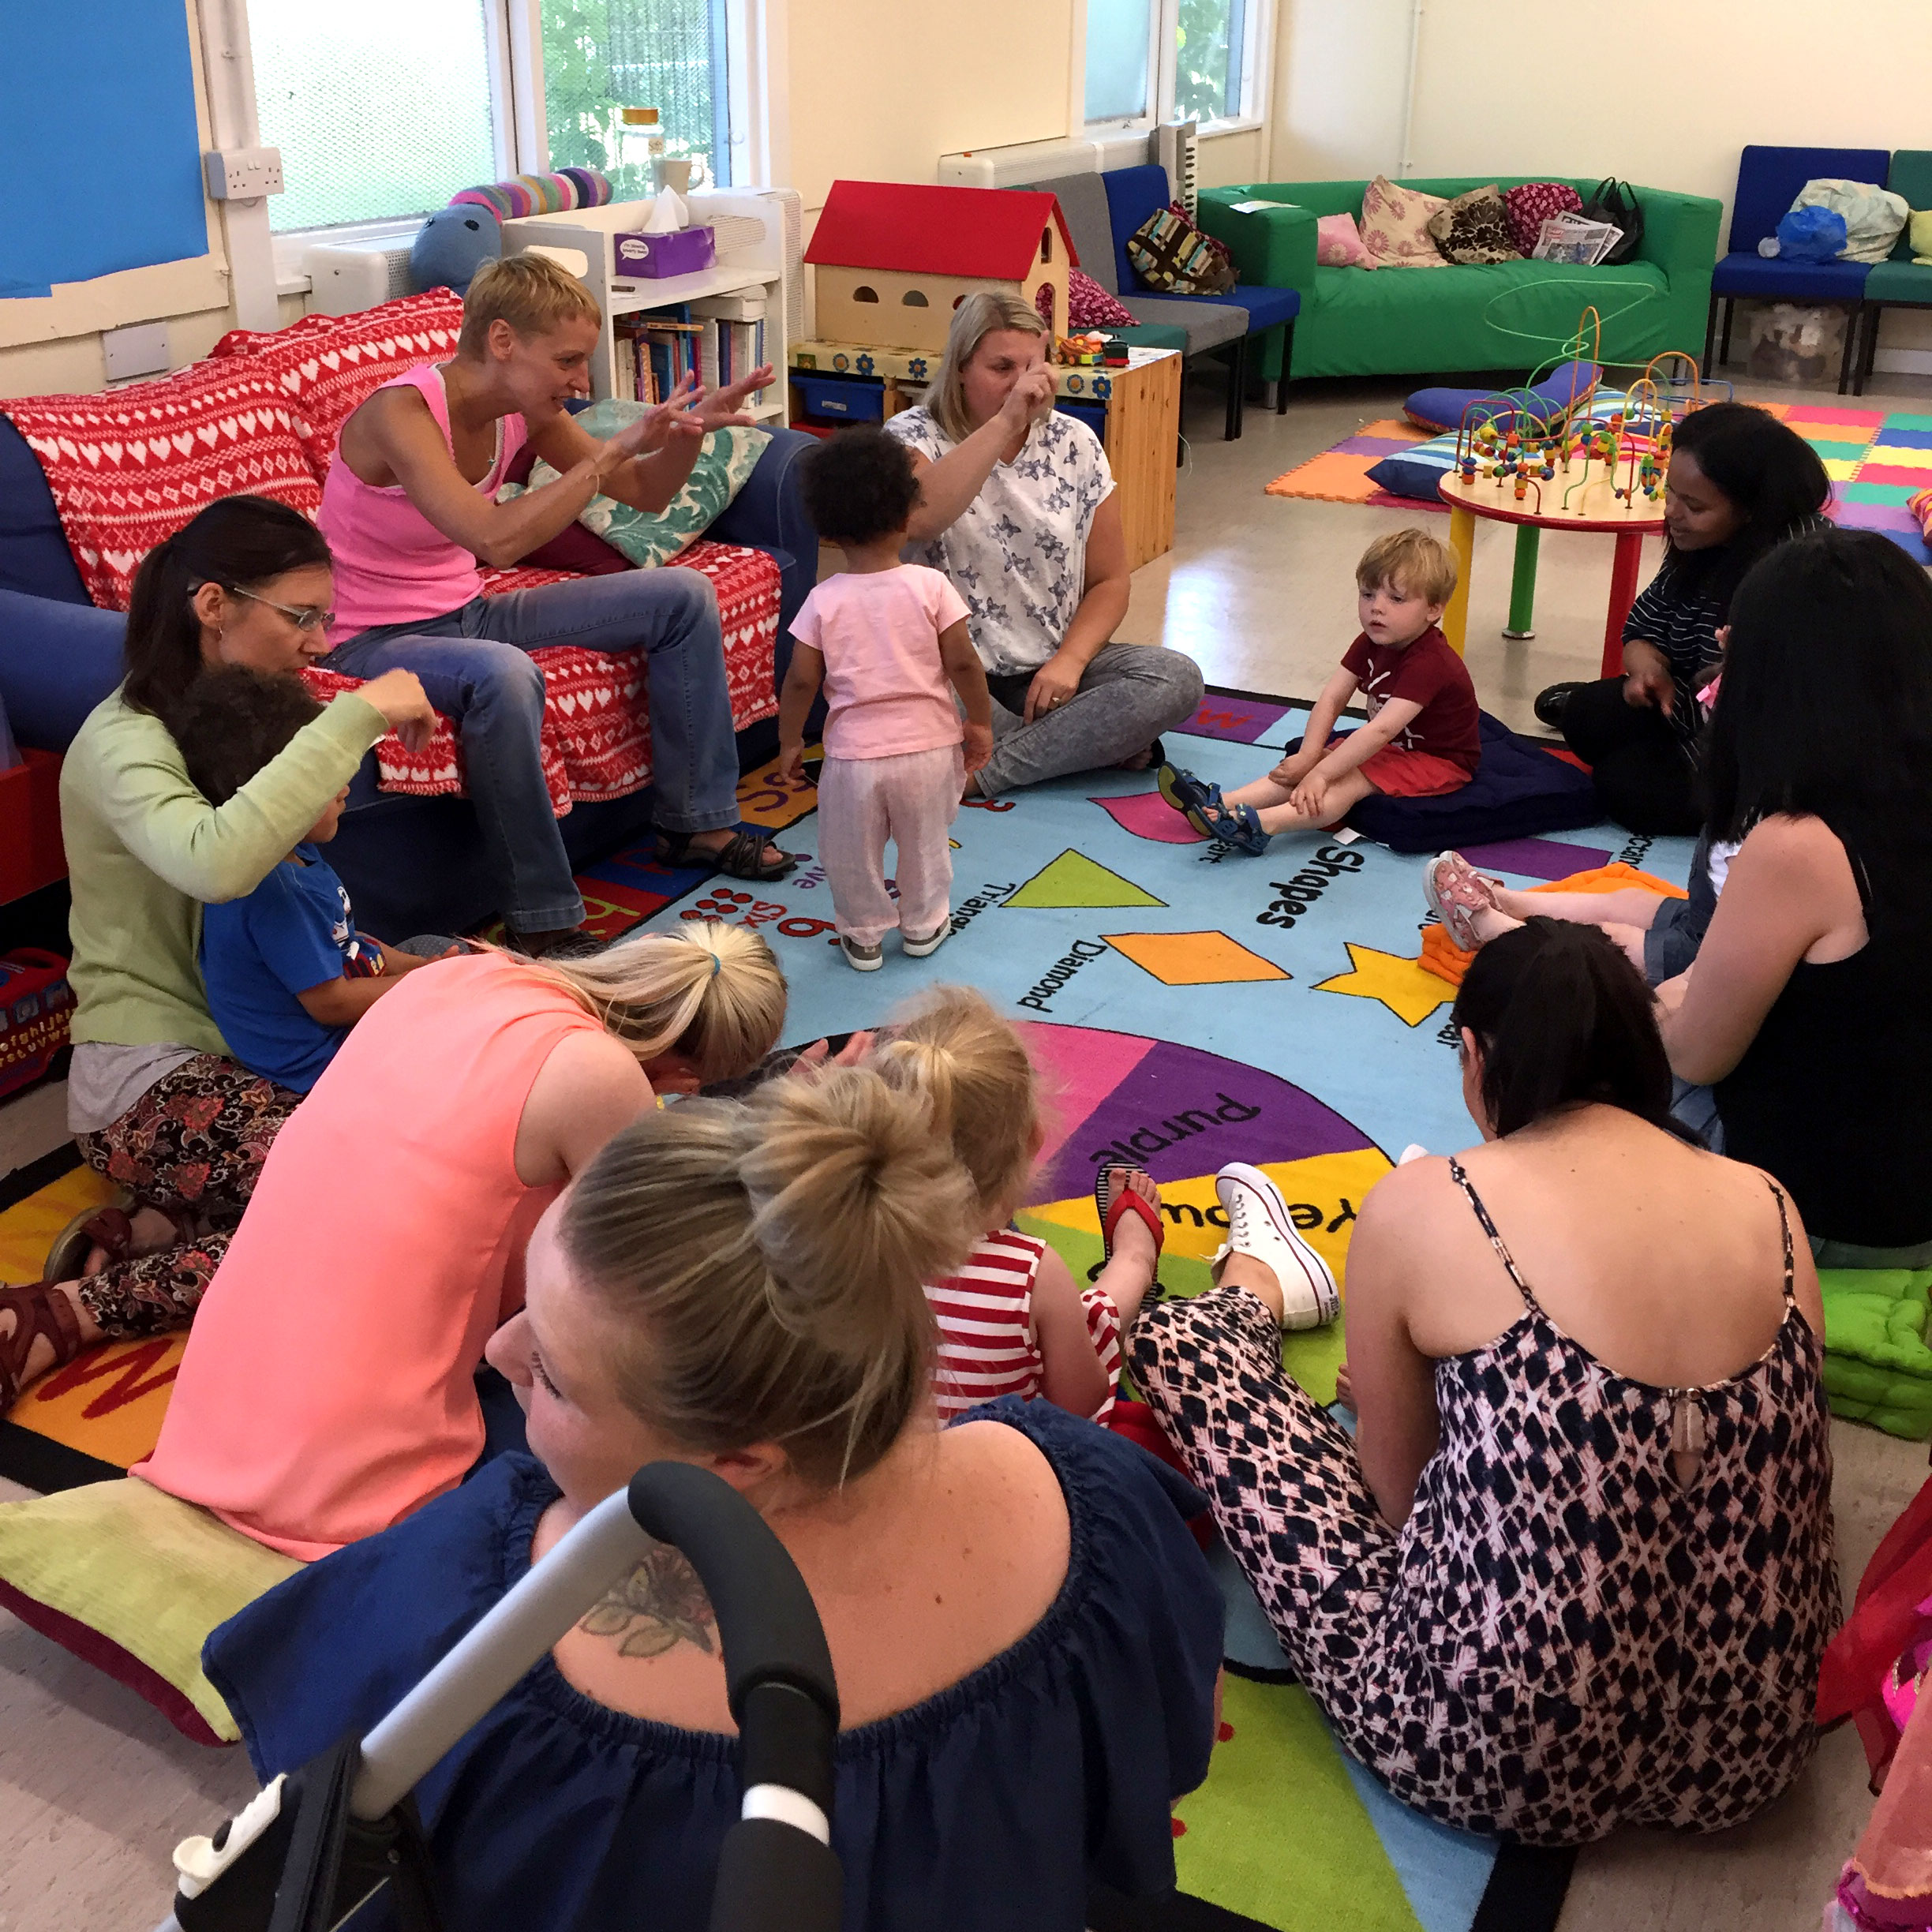 A group of Mums and babies sit on the floor in a circle for storytime. They are sitting on colourful ruggs with toys all around. Chloe is reading a story to them.